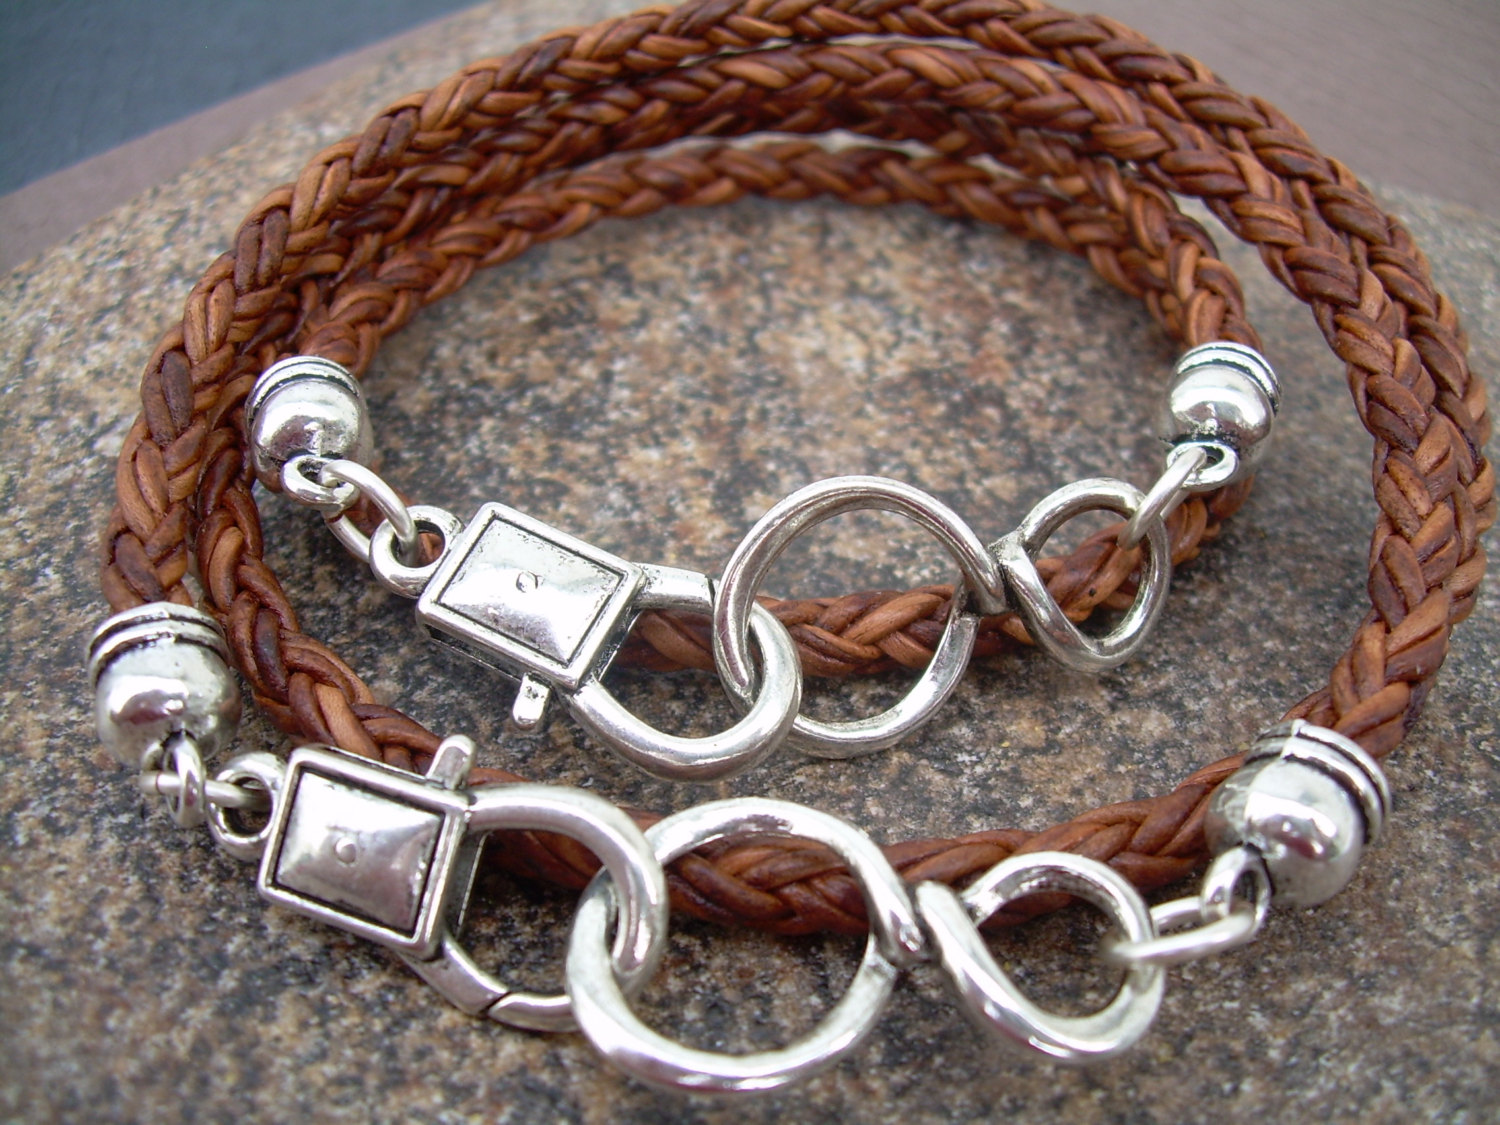 His And Hers Set Of Infinity Bracelets Leather Bracelet Mens Womens Natural Light Brown Braided